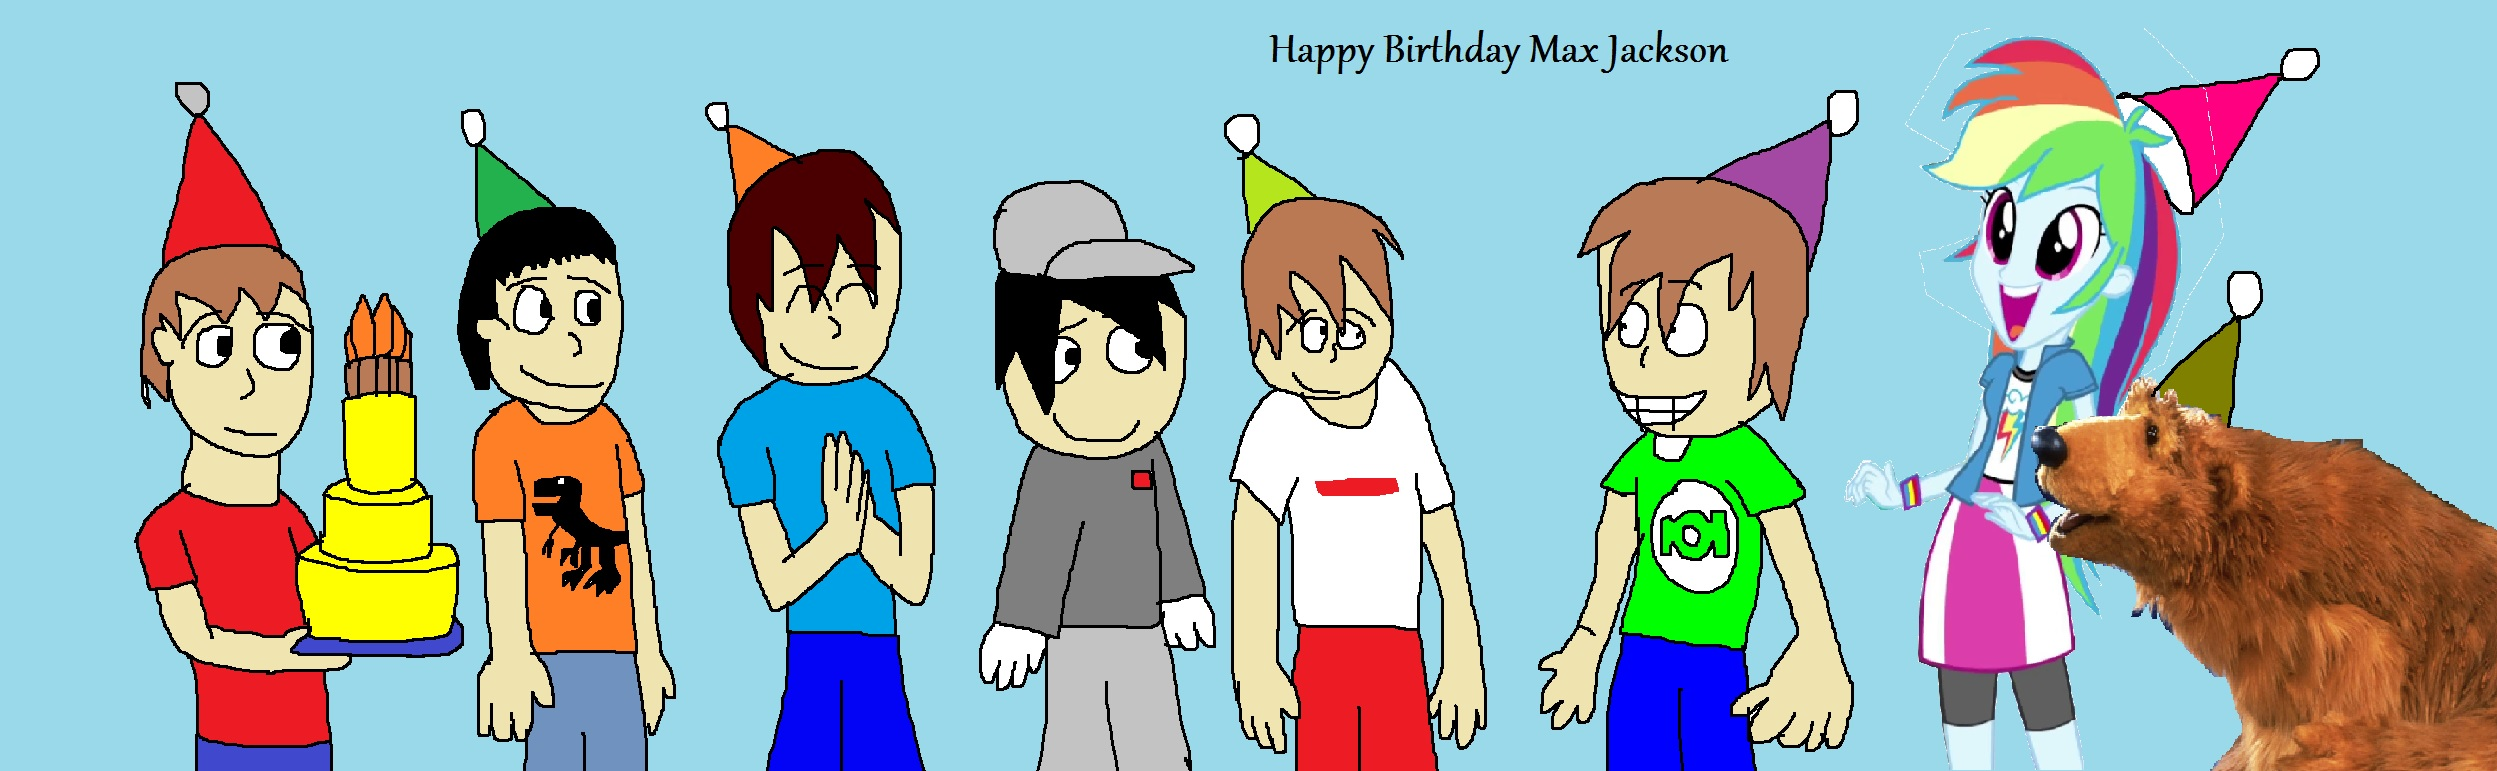 Happy Birthday Max Jackson by Rainbow-Dash-Rockz